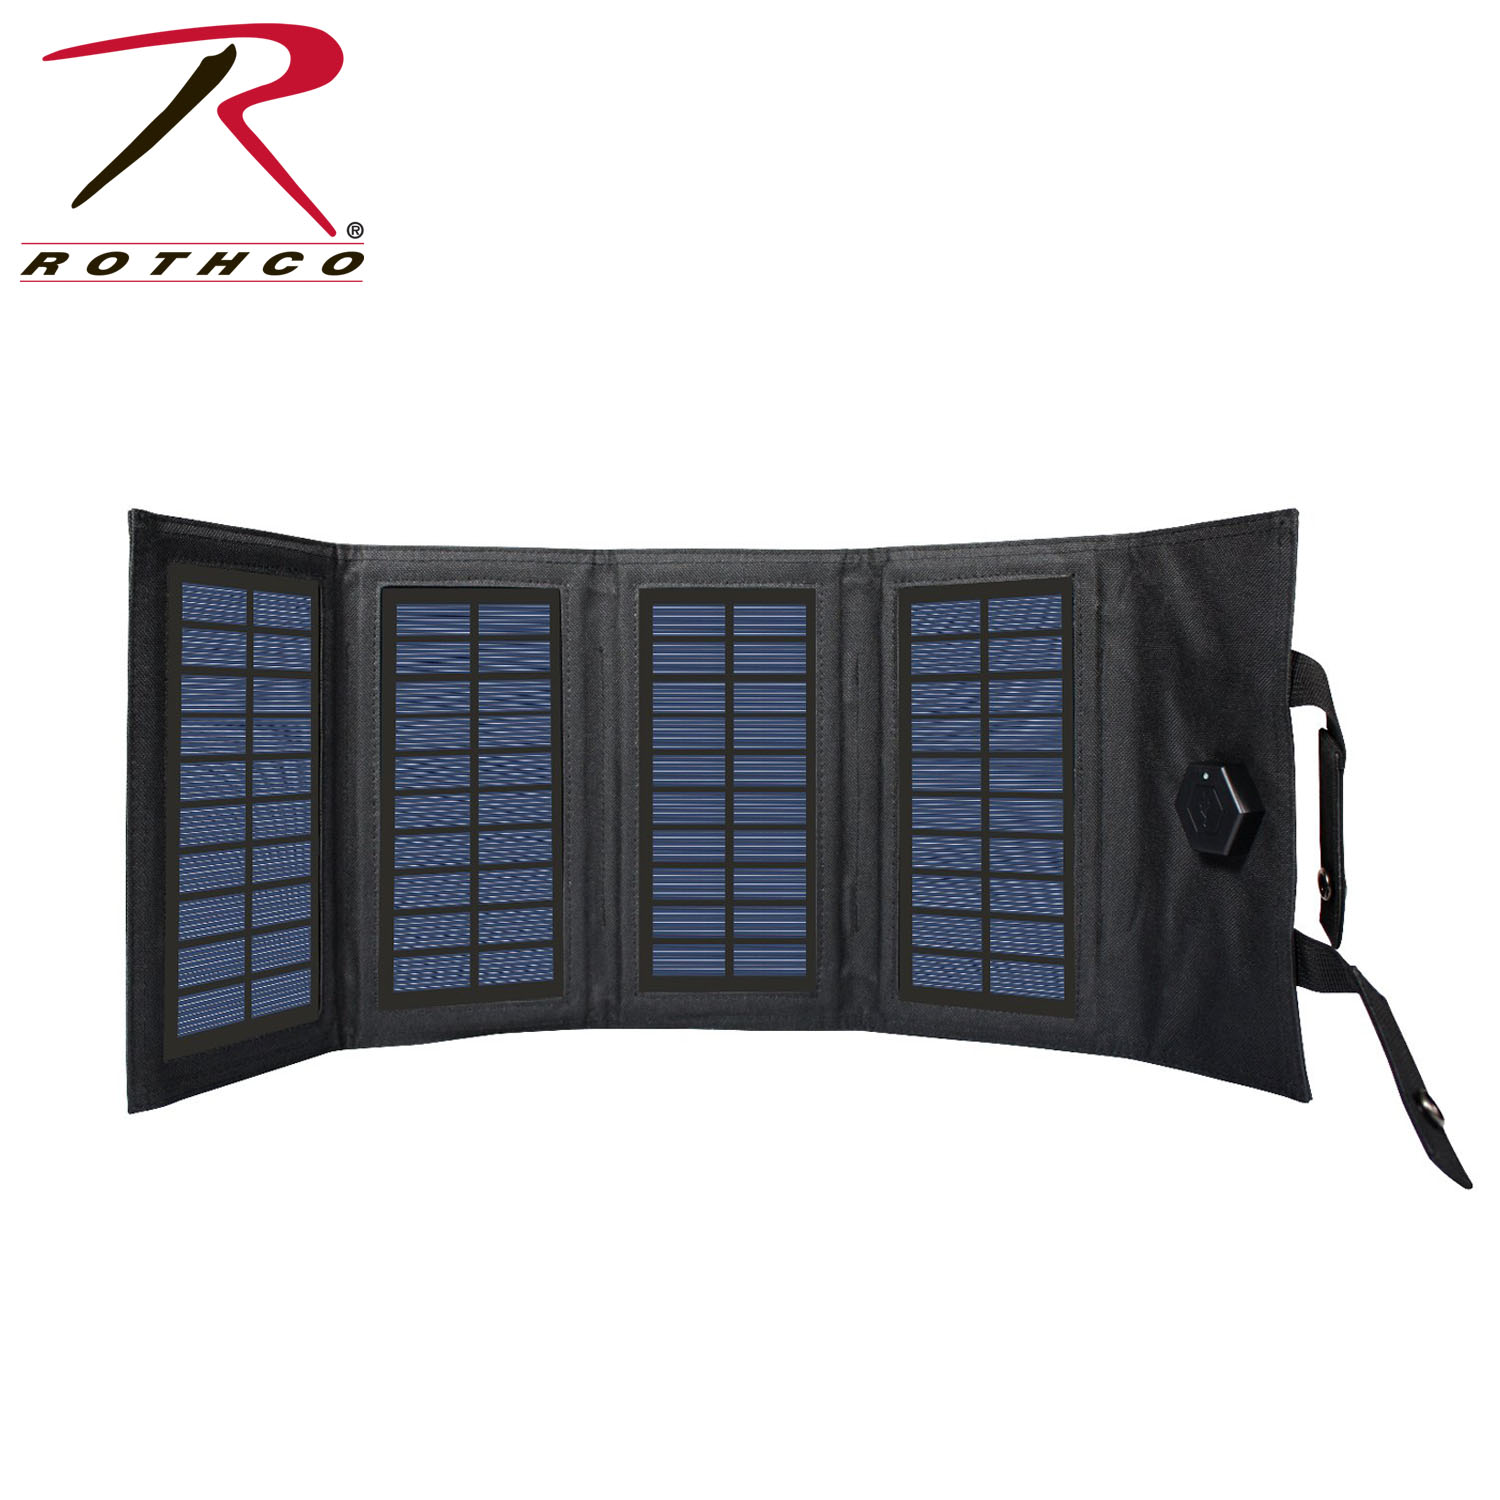 Rothco M.O.L.L.E. Portable Solar Charger Review